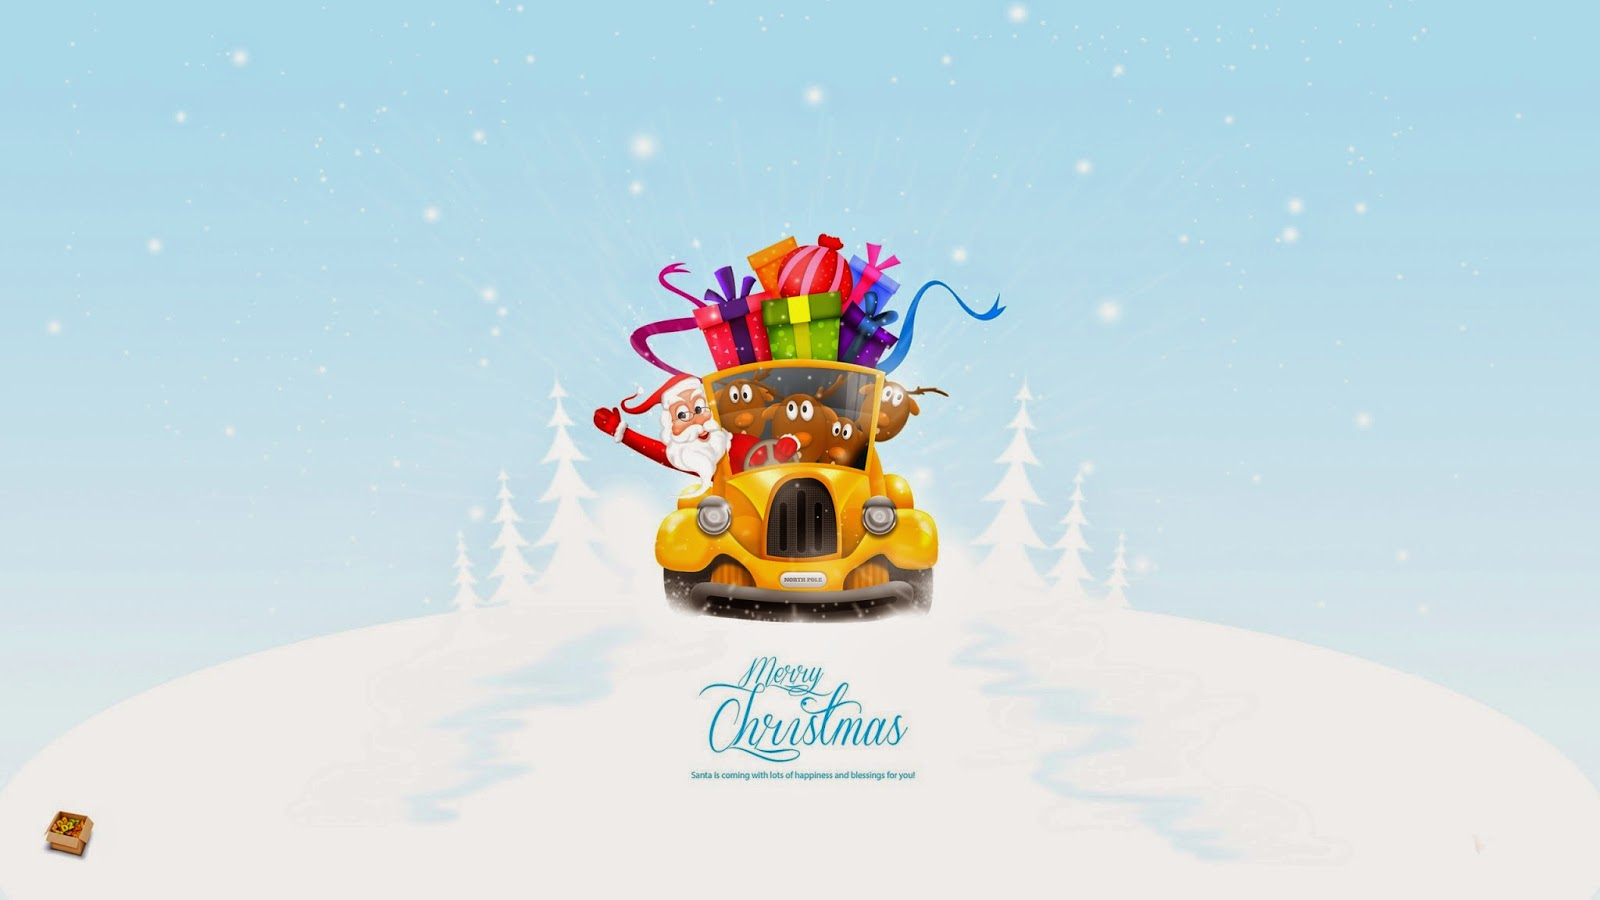 merry-christmas-cartoon-animation-3d-wallpaper-for-kids-free-download.jpg